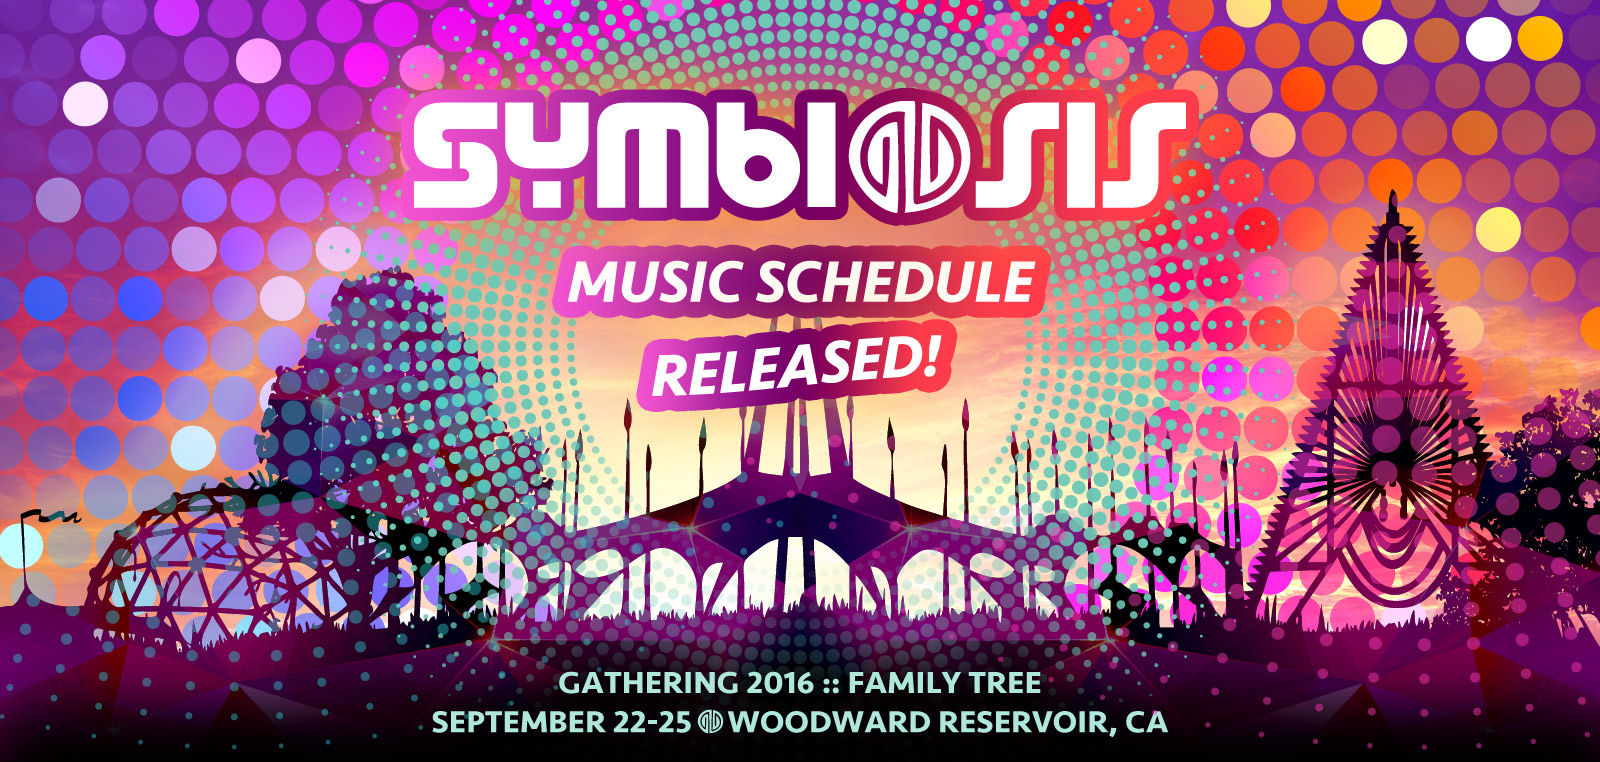 Symbiosis Gathering Music Schedule Released